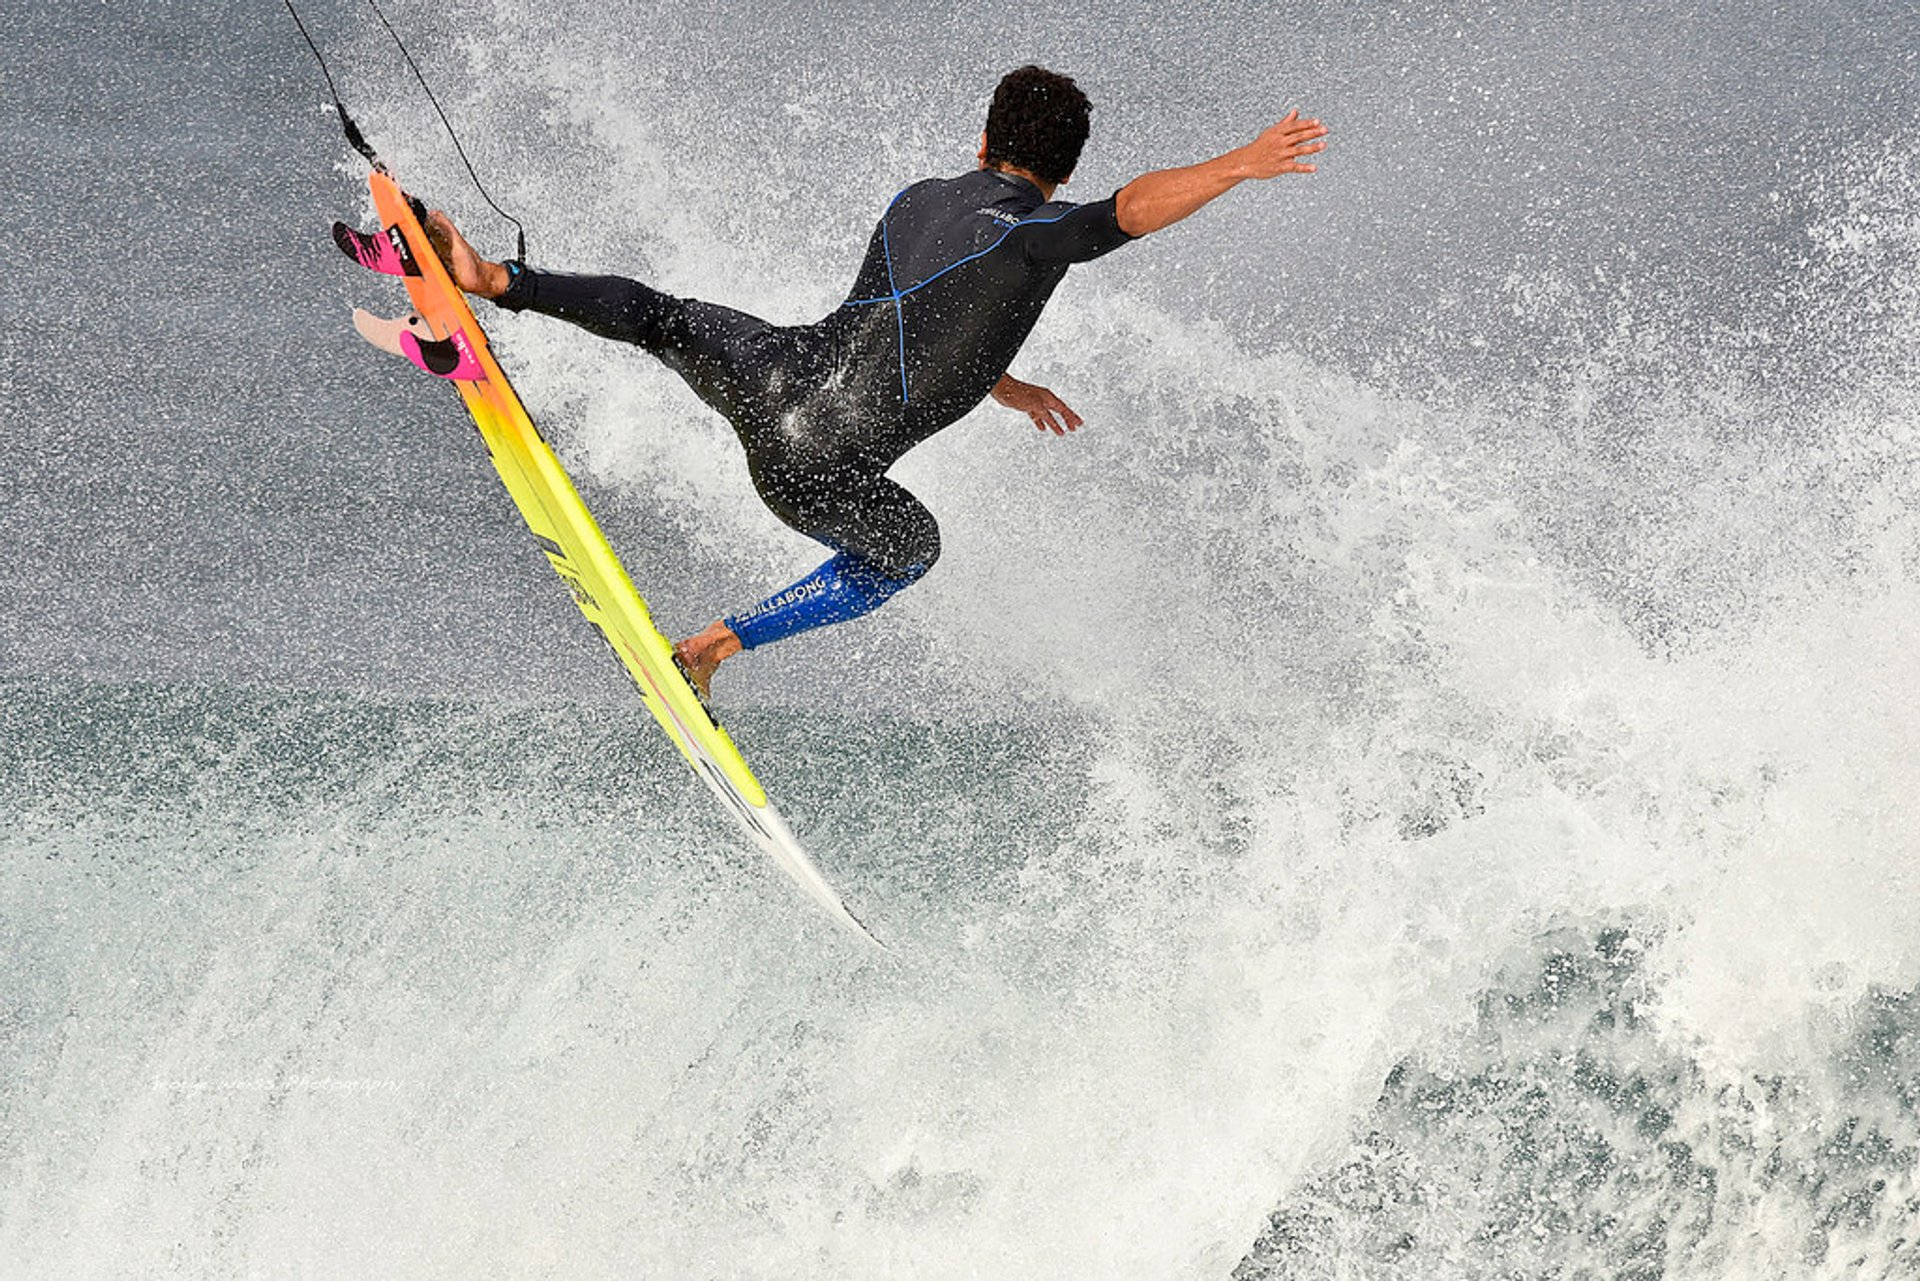 Best time for Rip Curl Pro Bells Beach in Victoria 2019